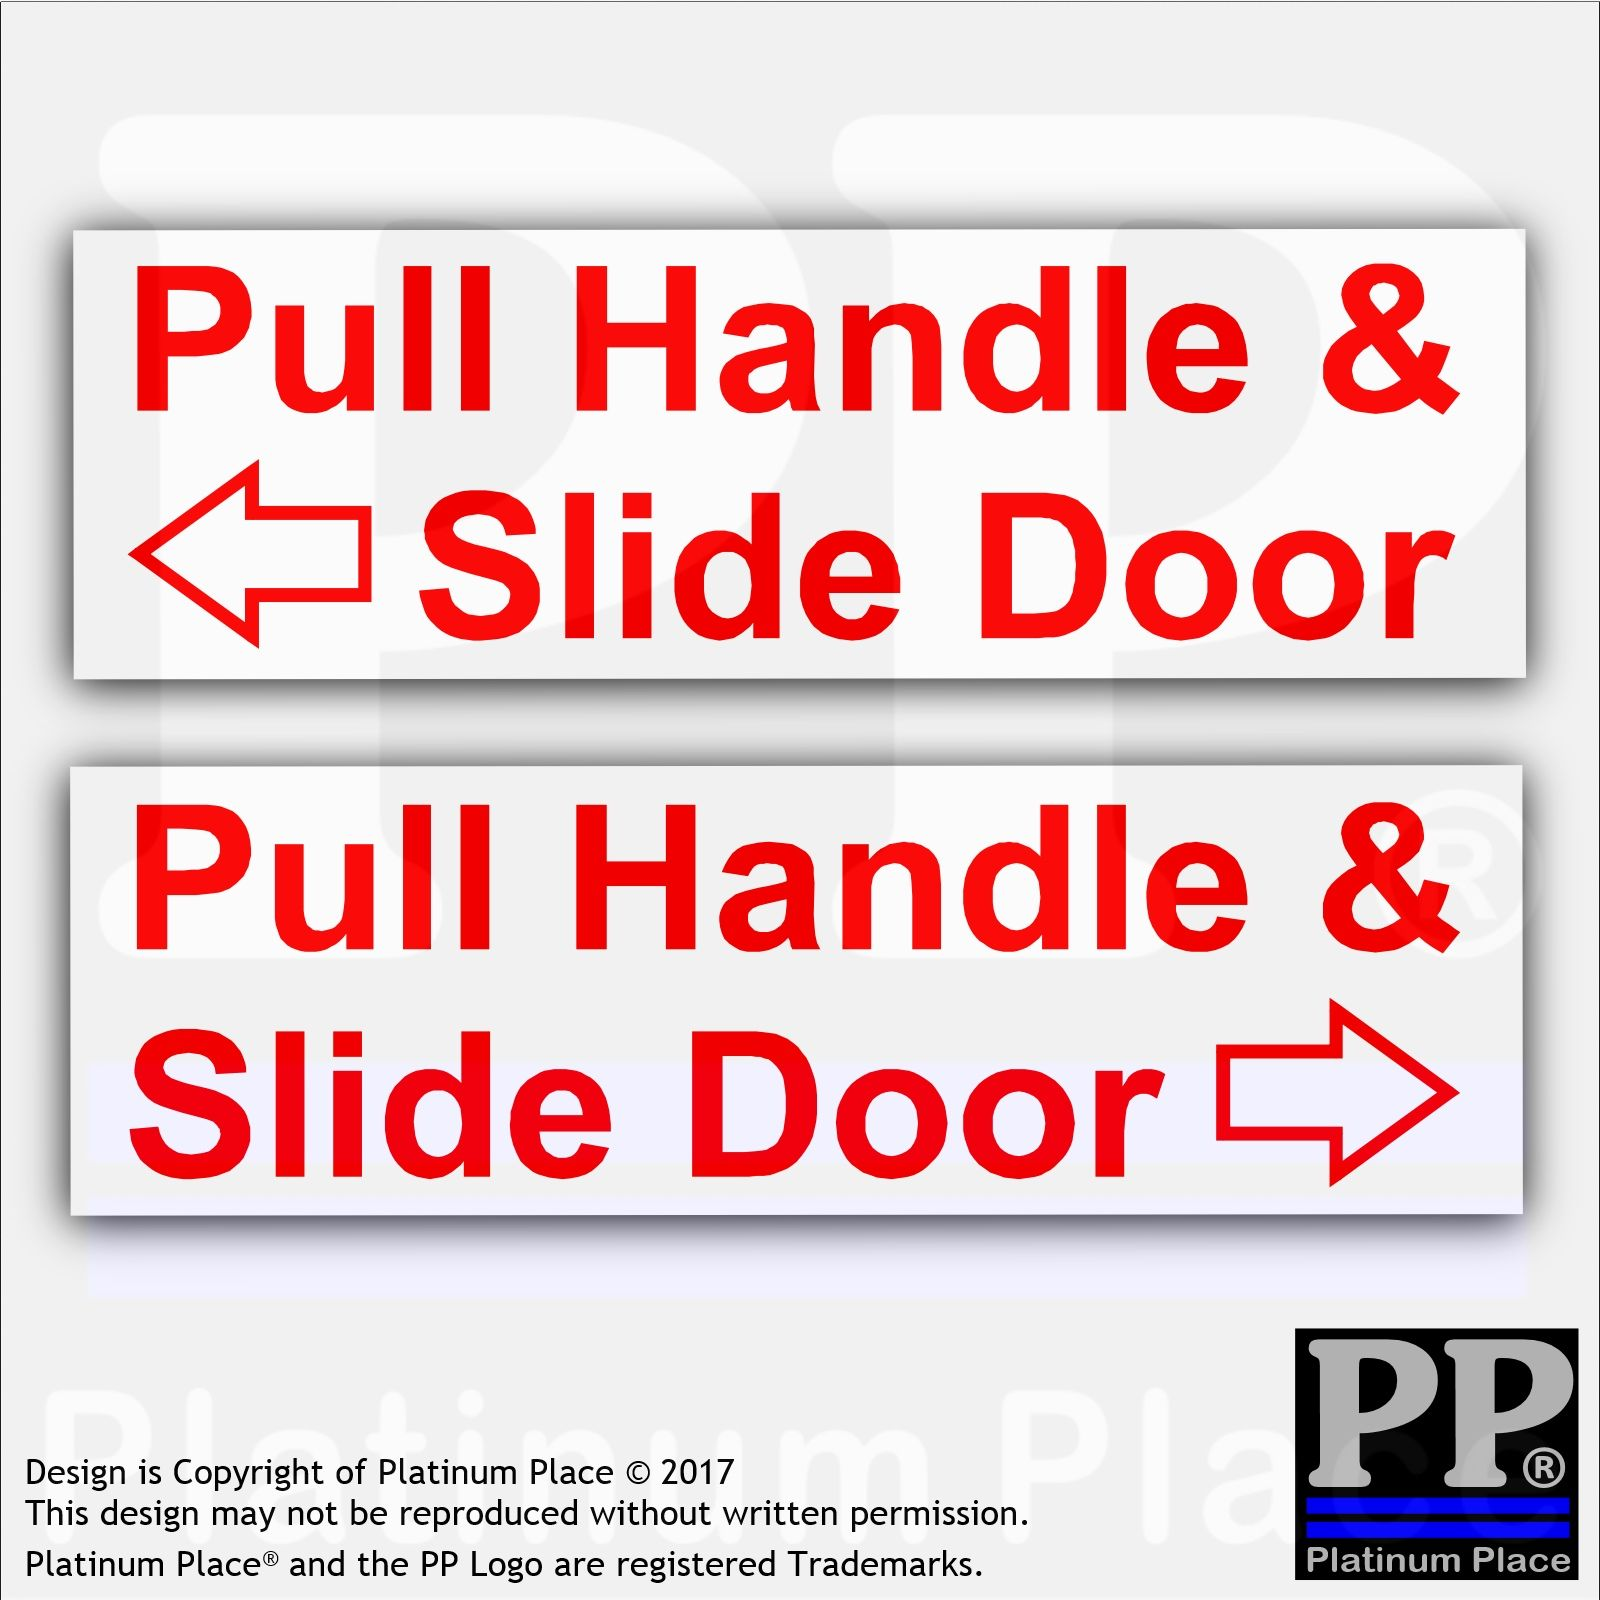 2 X Pull Handle Slide Door Stickers Red On White Car